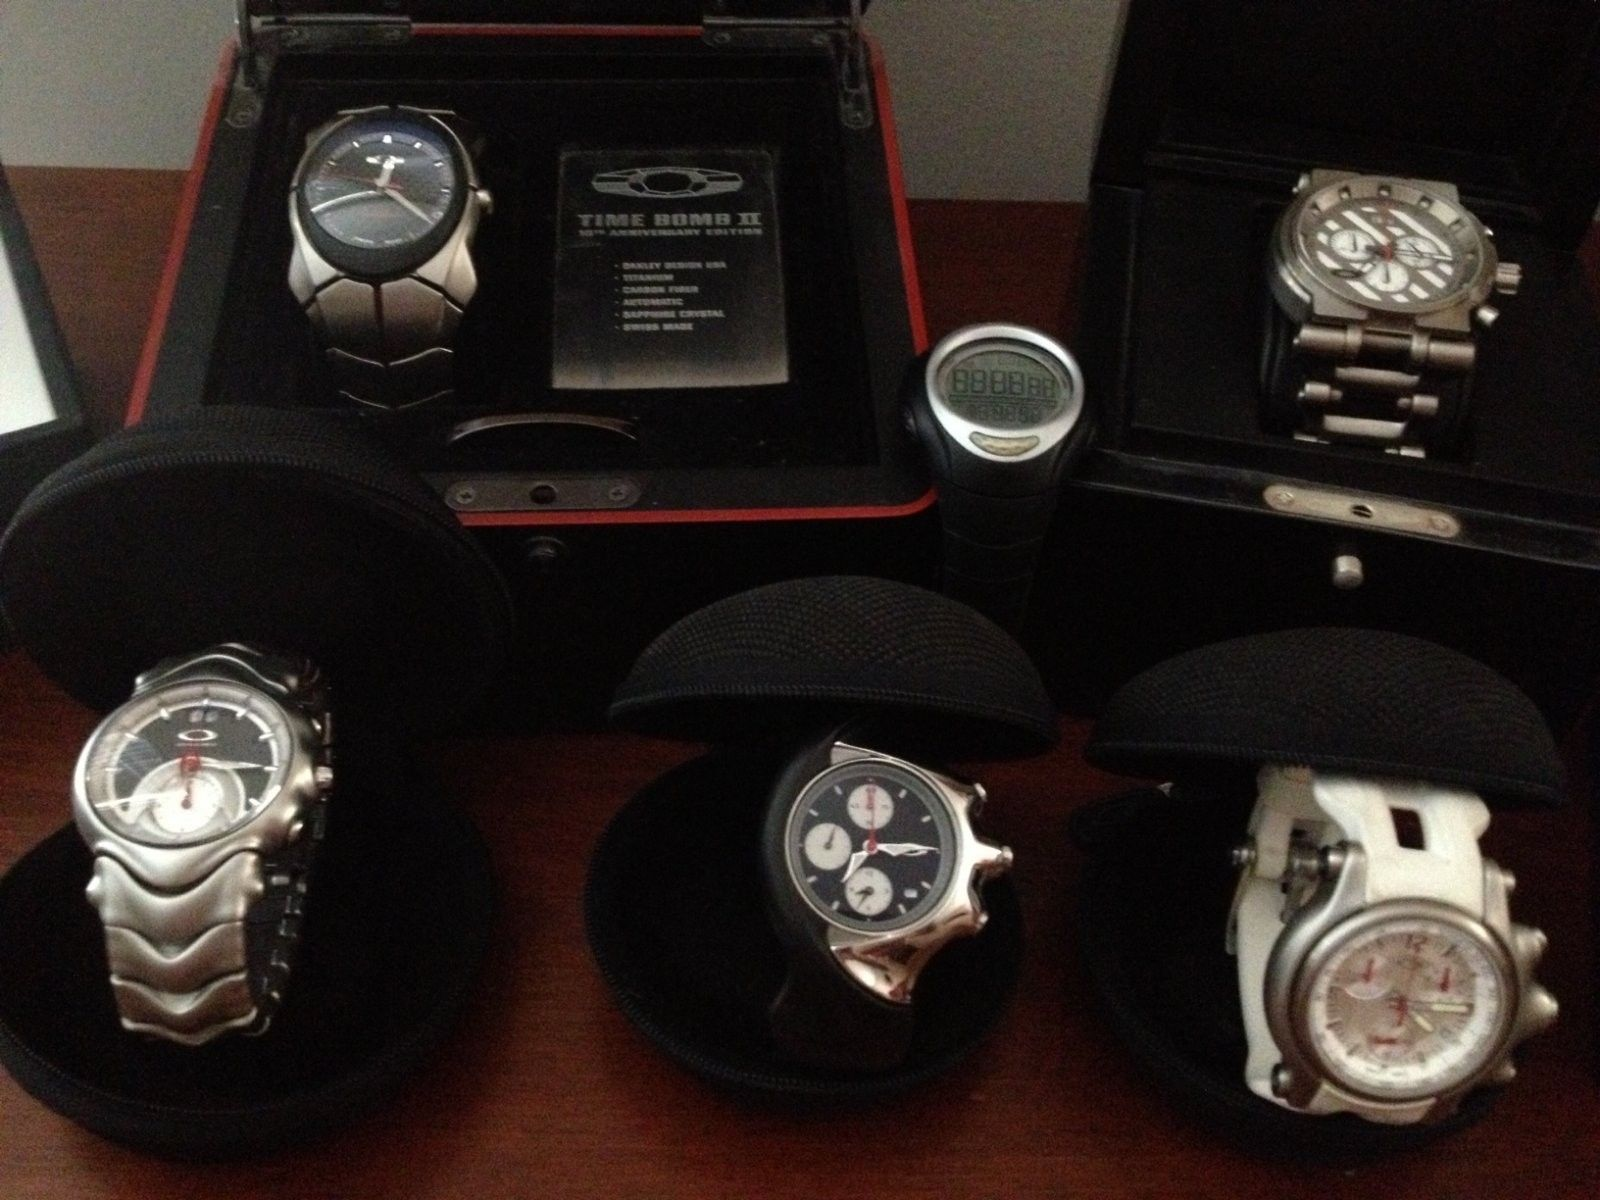 My Oakley Watch Collection - Watch Collection 1.jpg